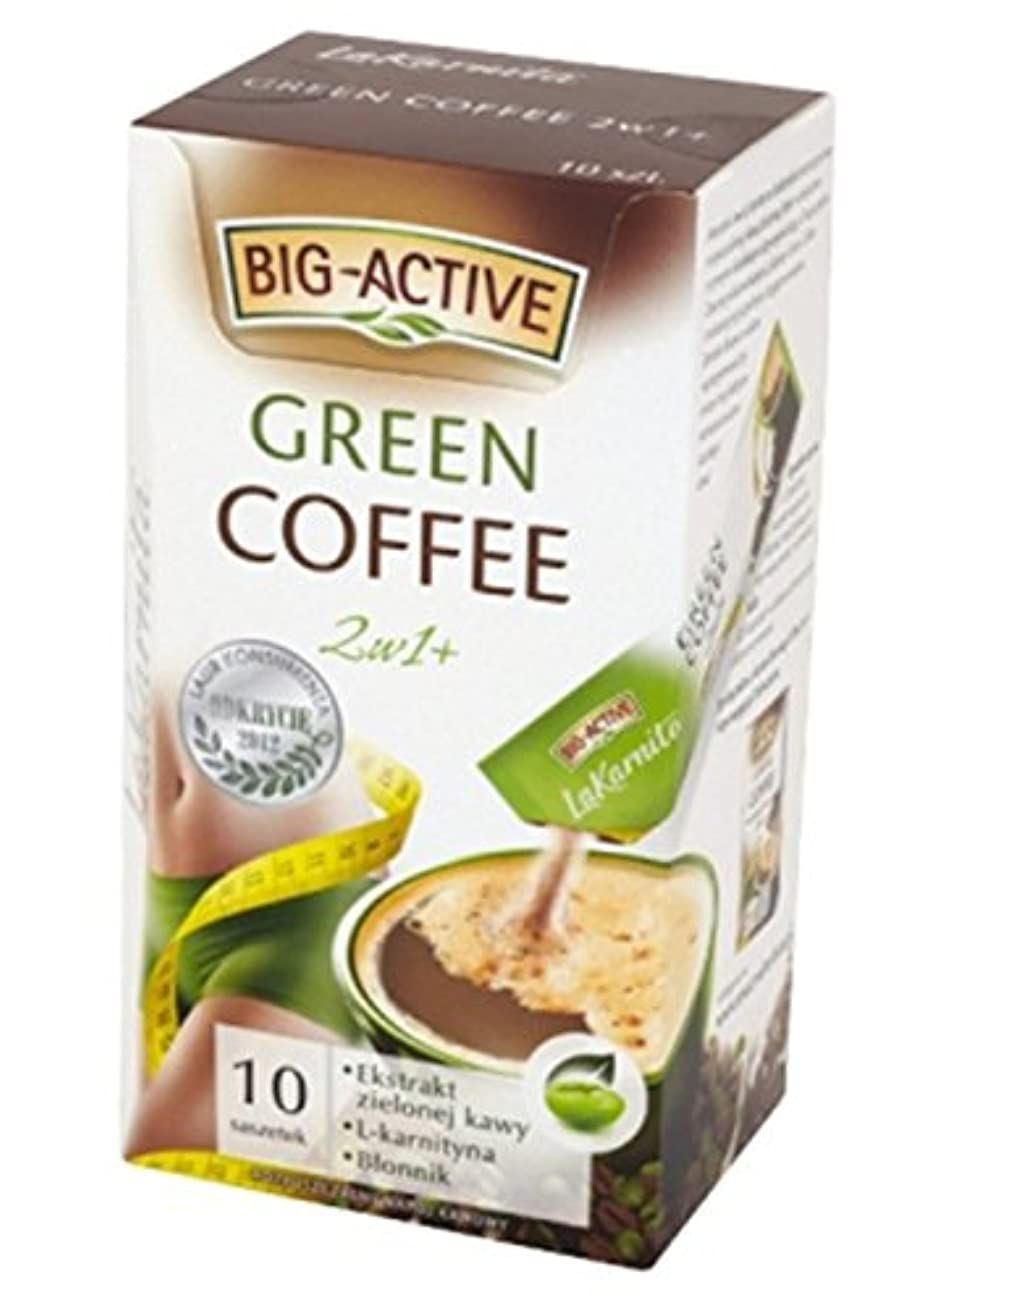 機構混合グリルスリミン グリー グコーヒー/5 boxes Big Active La Karnita Green Coffee Slimming Sachet 2 IN 1